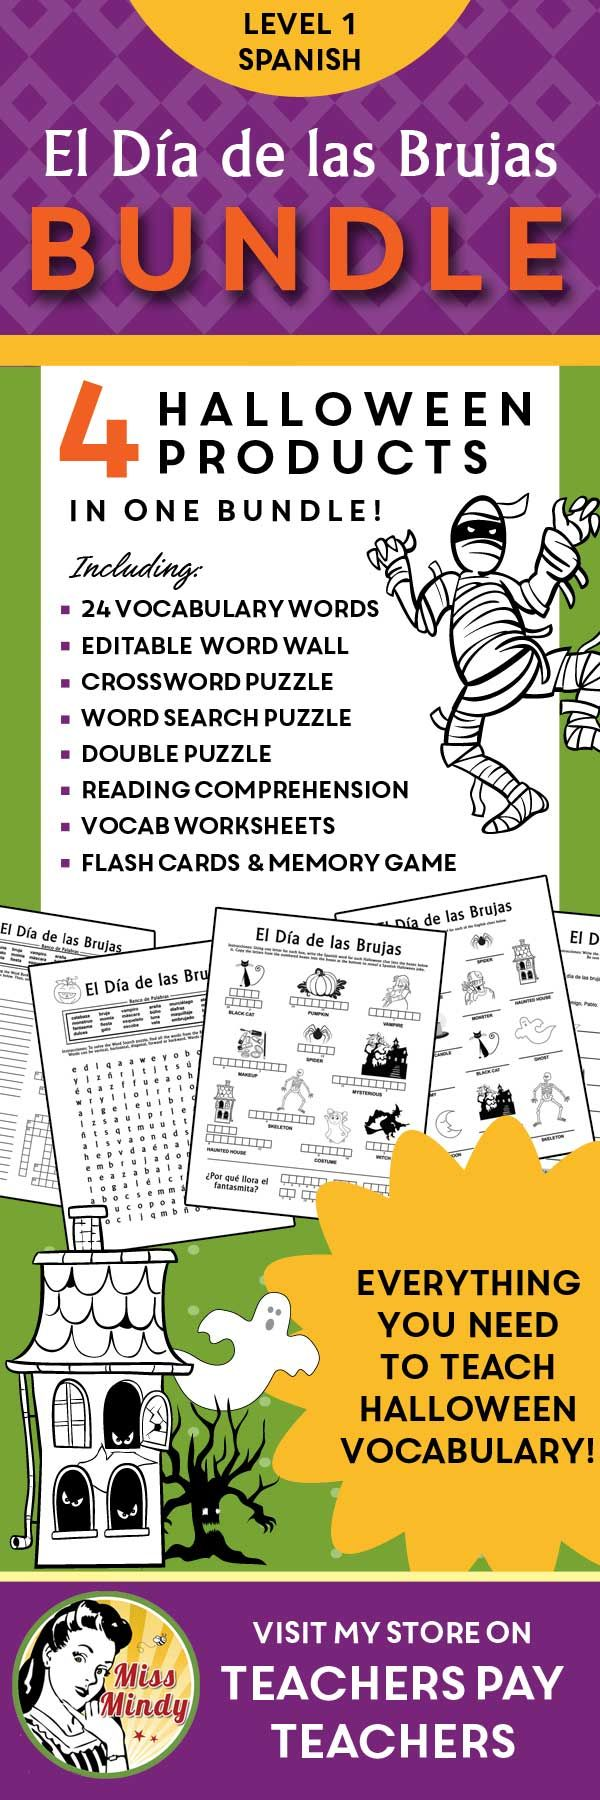 Game with shapes of different colors crossword - Spanish Halloween Bundle Everything You Need To Teach Level 1 Spanish Students Halloween Vocabulary